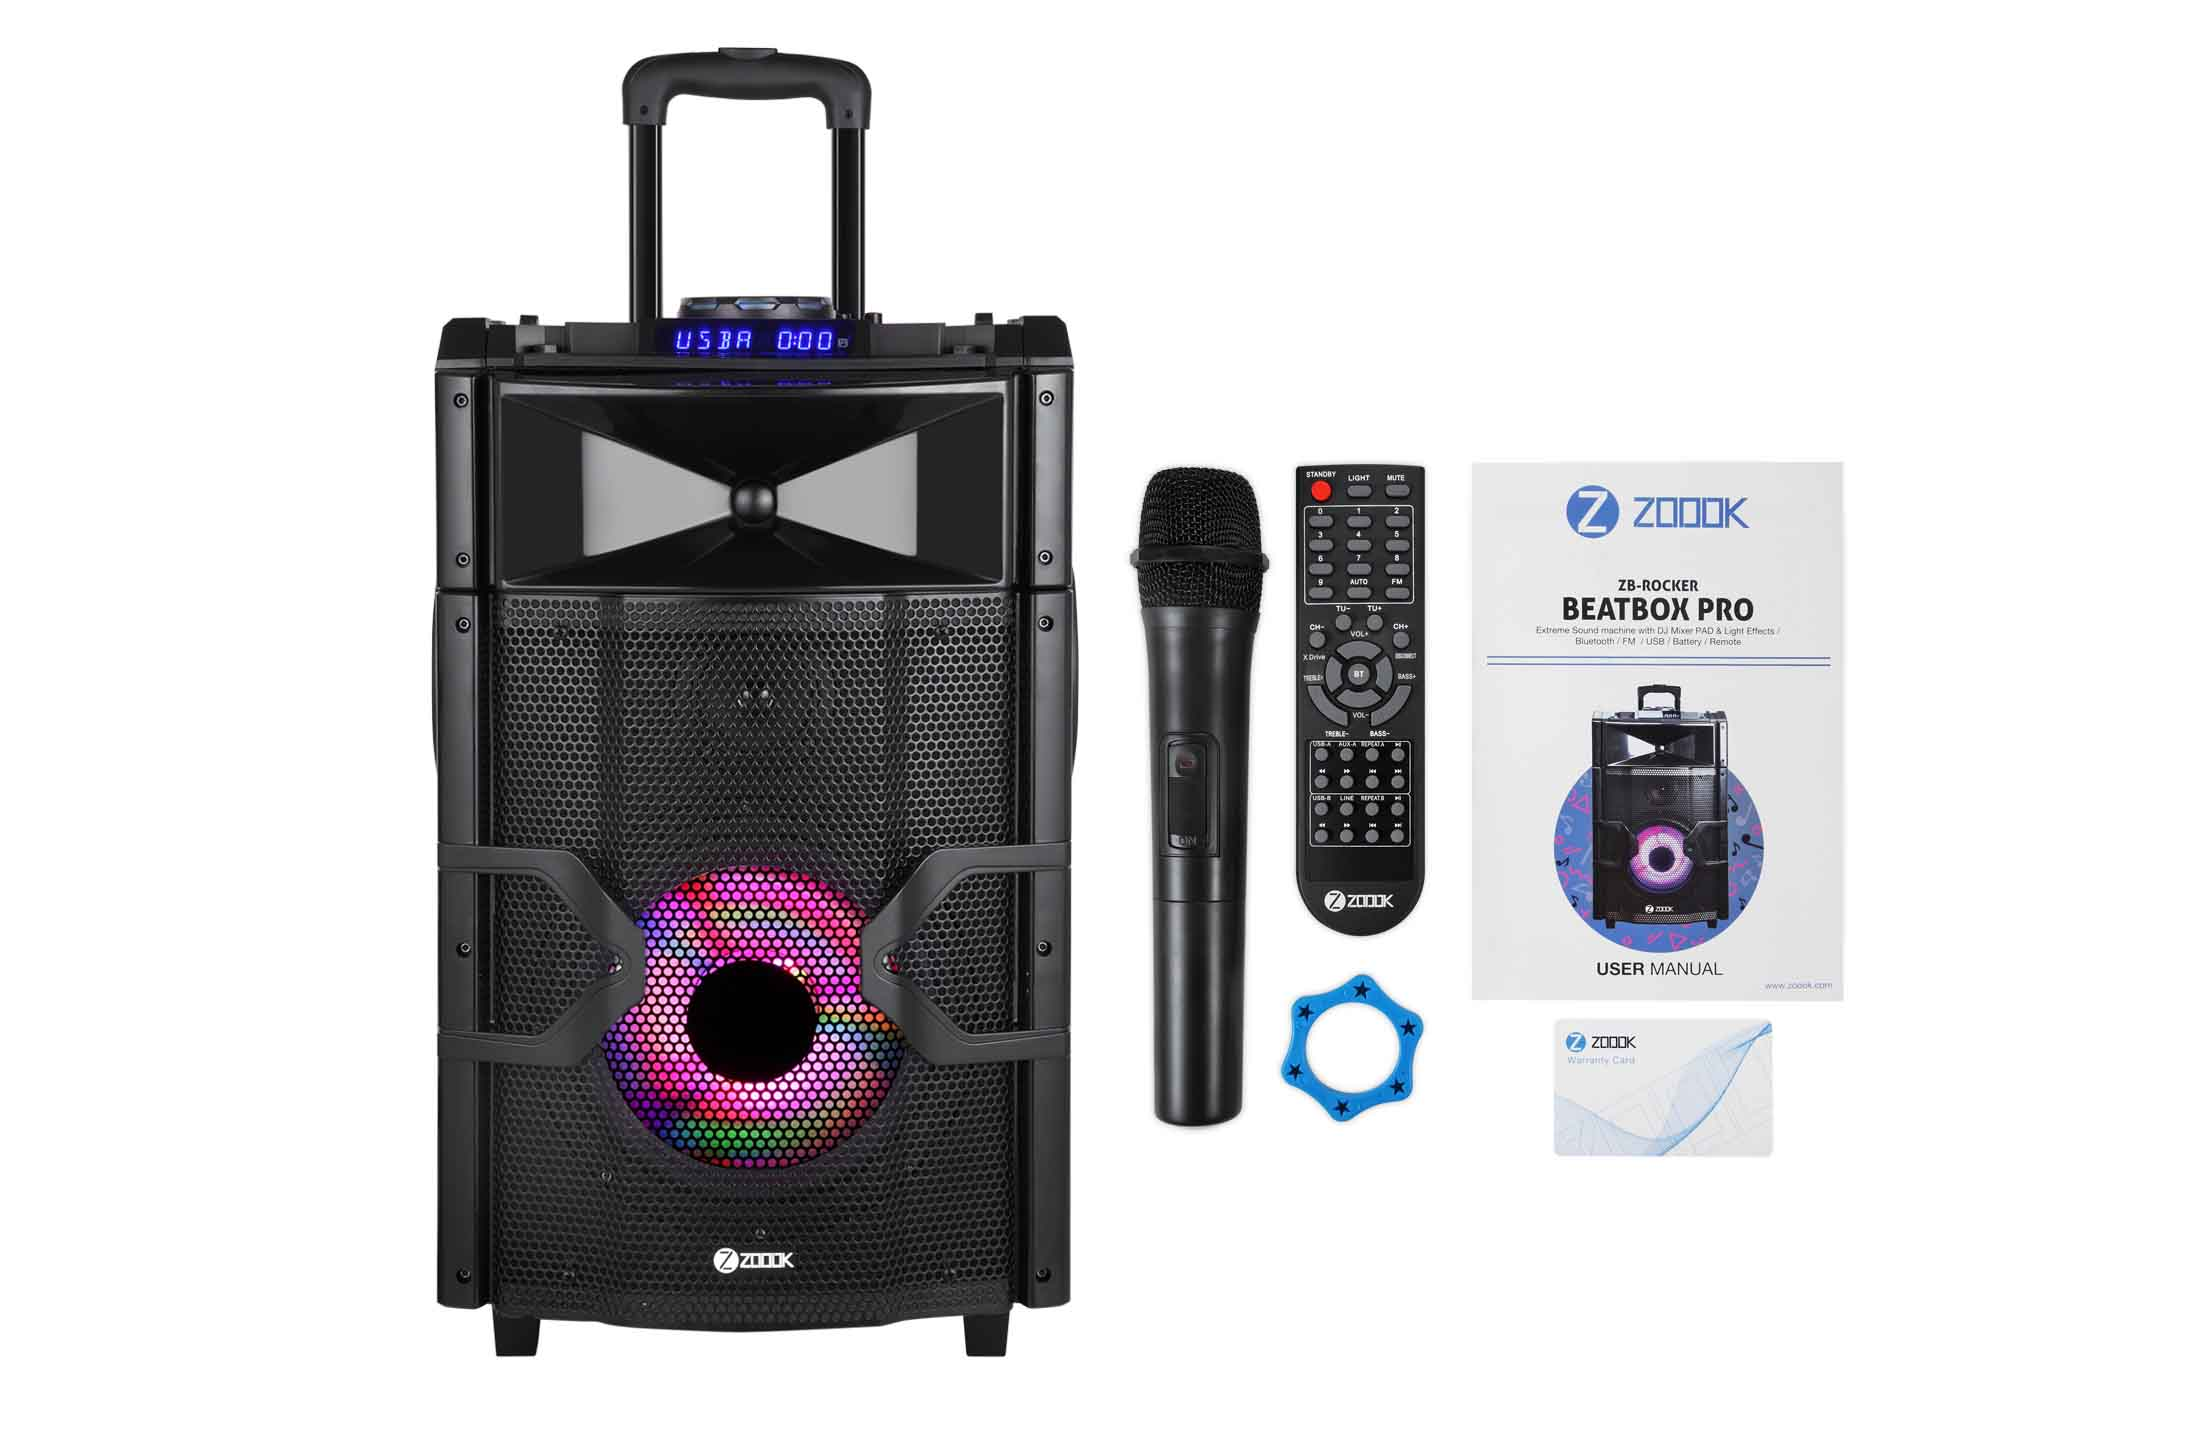 Zoook launched the Ultimate Beatbox Pro with Portable Trolley